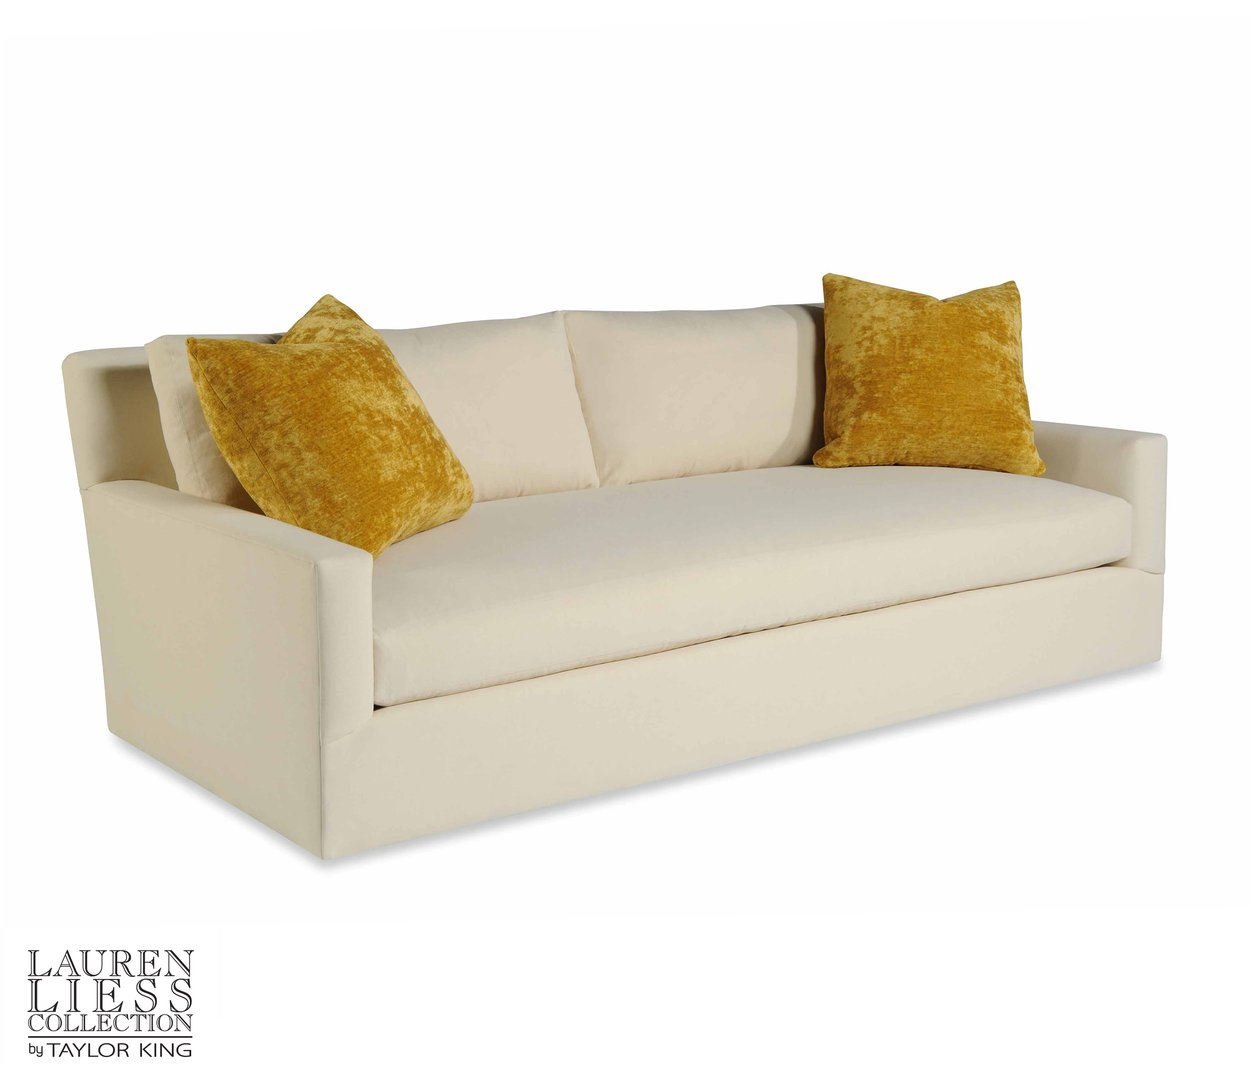 gentleman sofa- upholstered